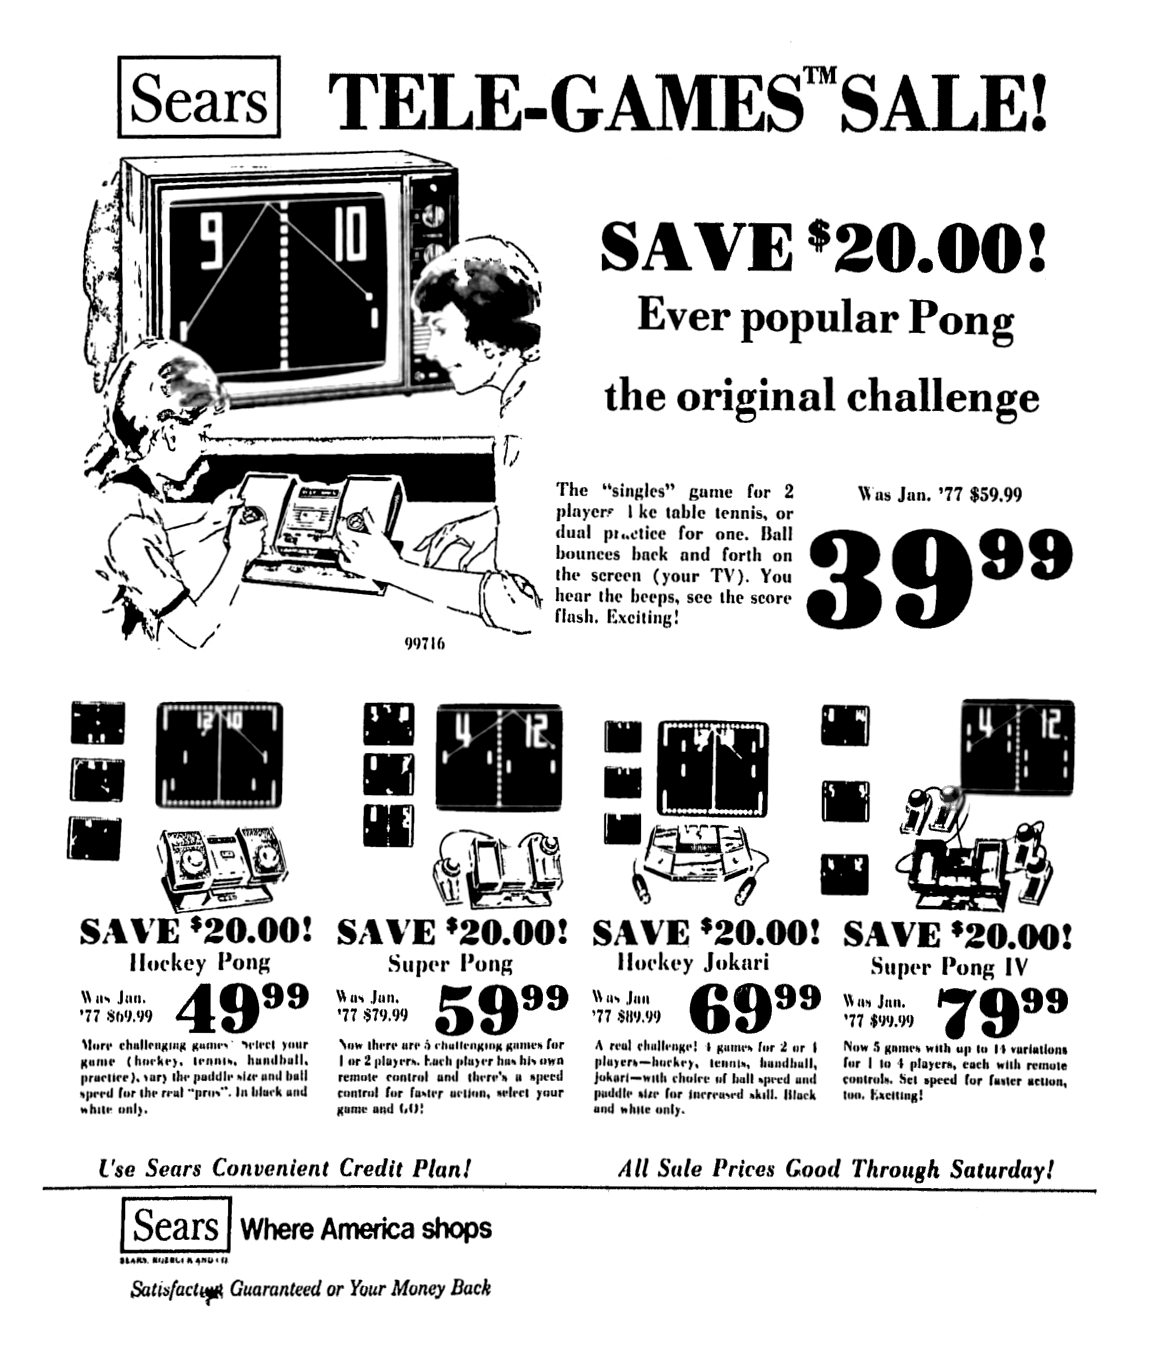 Sears Pong Games